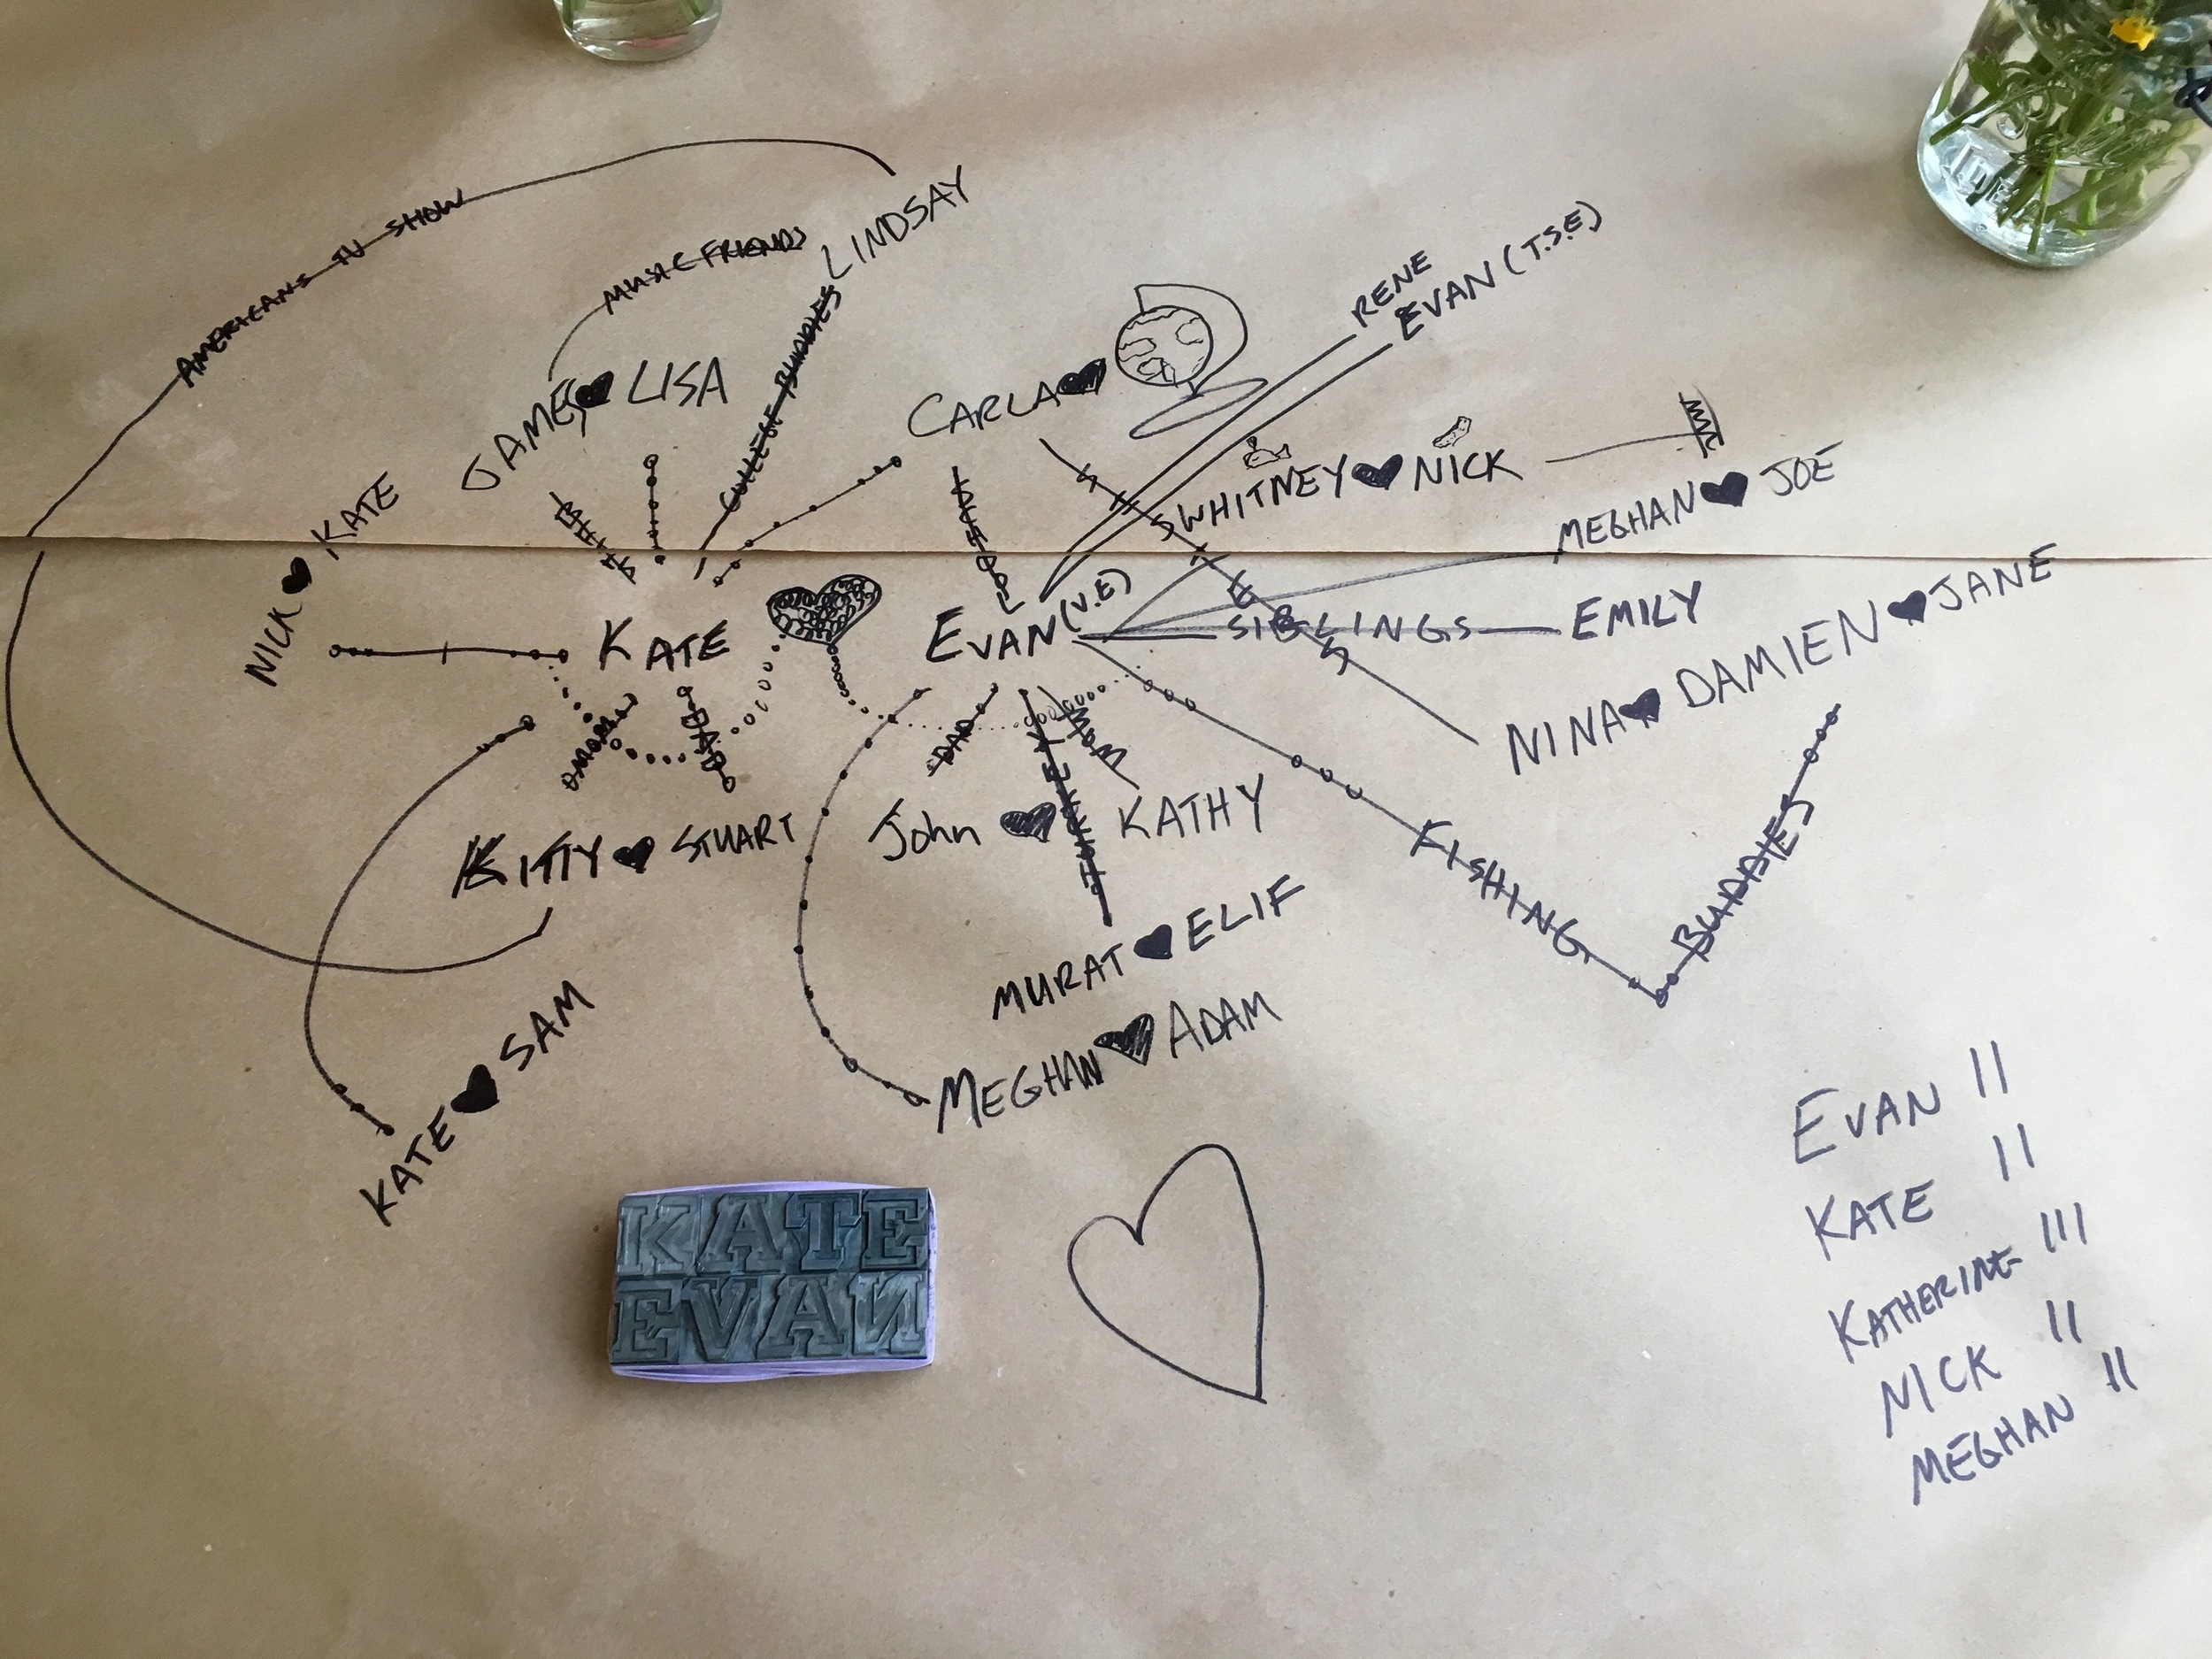 Friendship map by Lisa Niedermeyer.